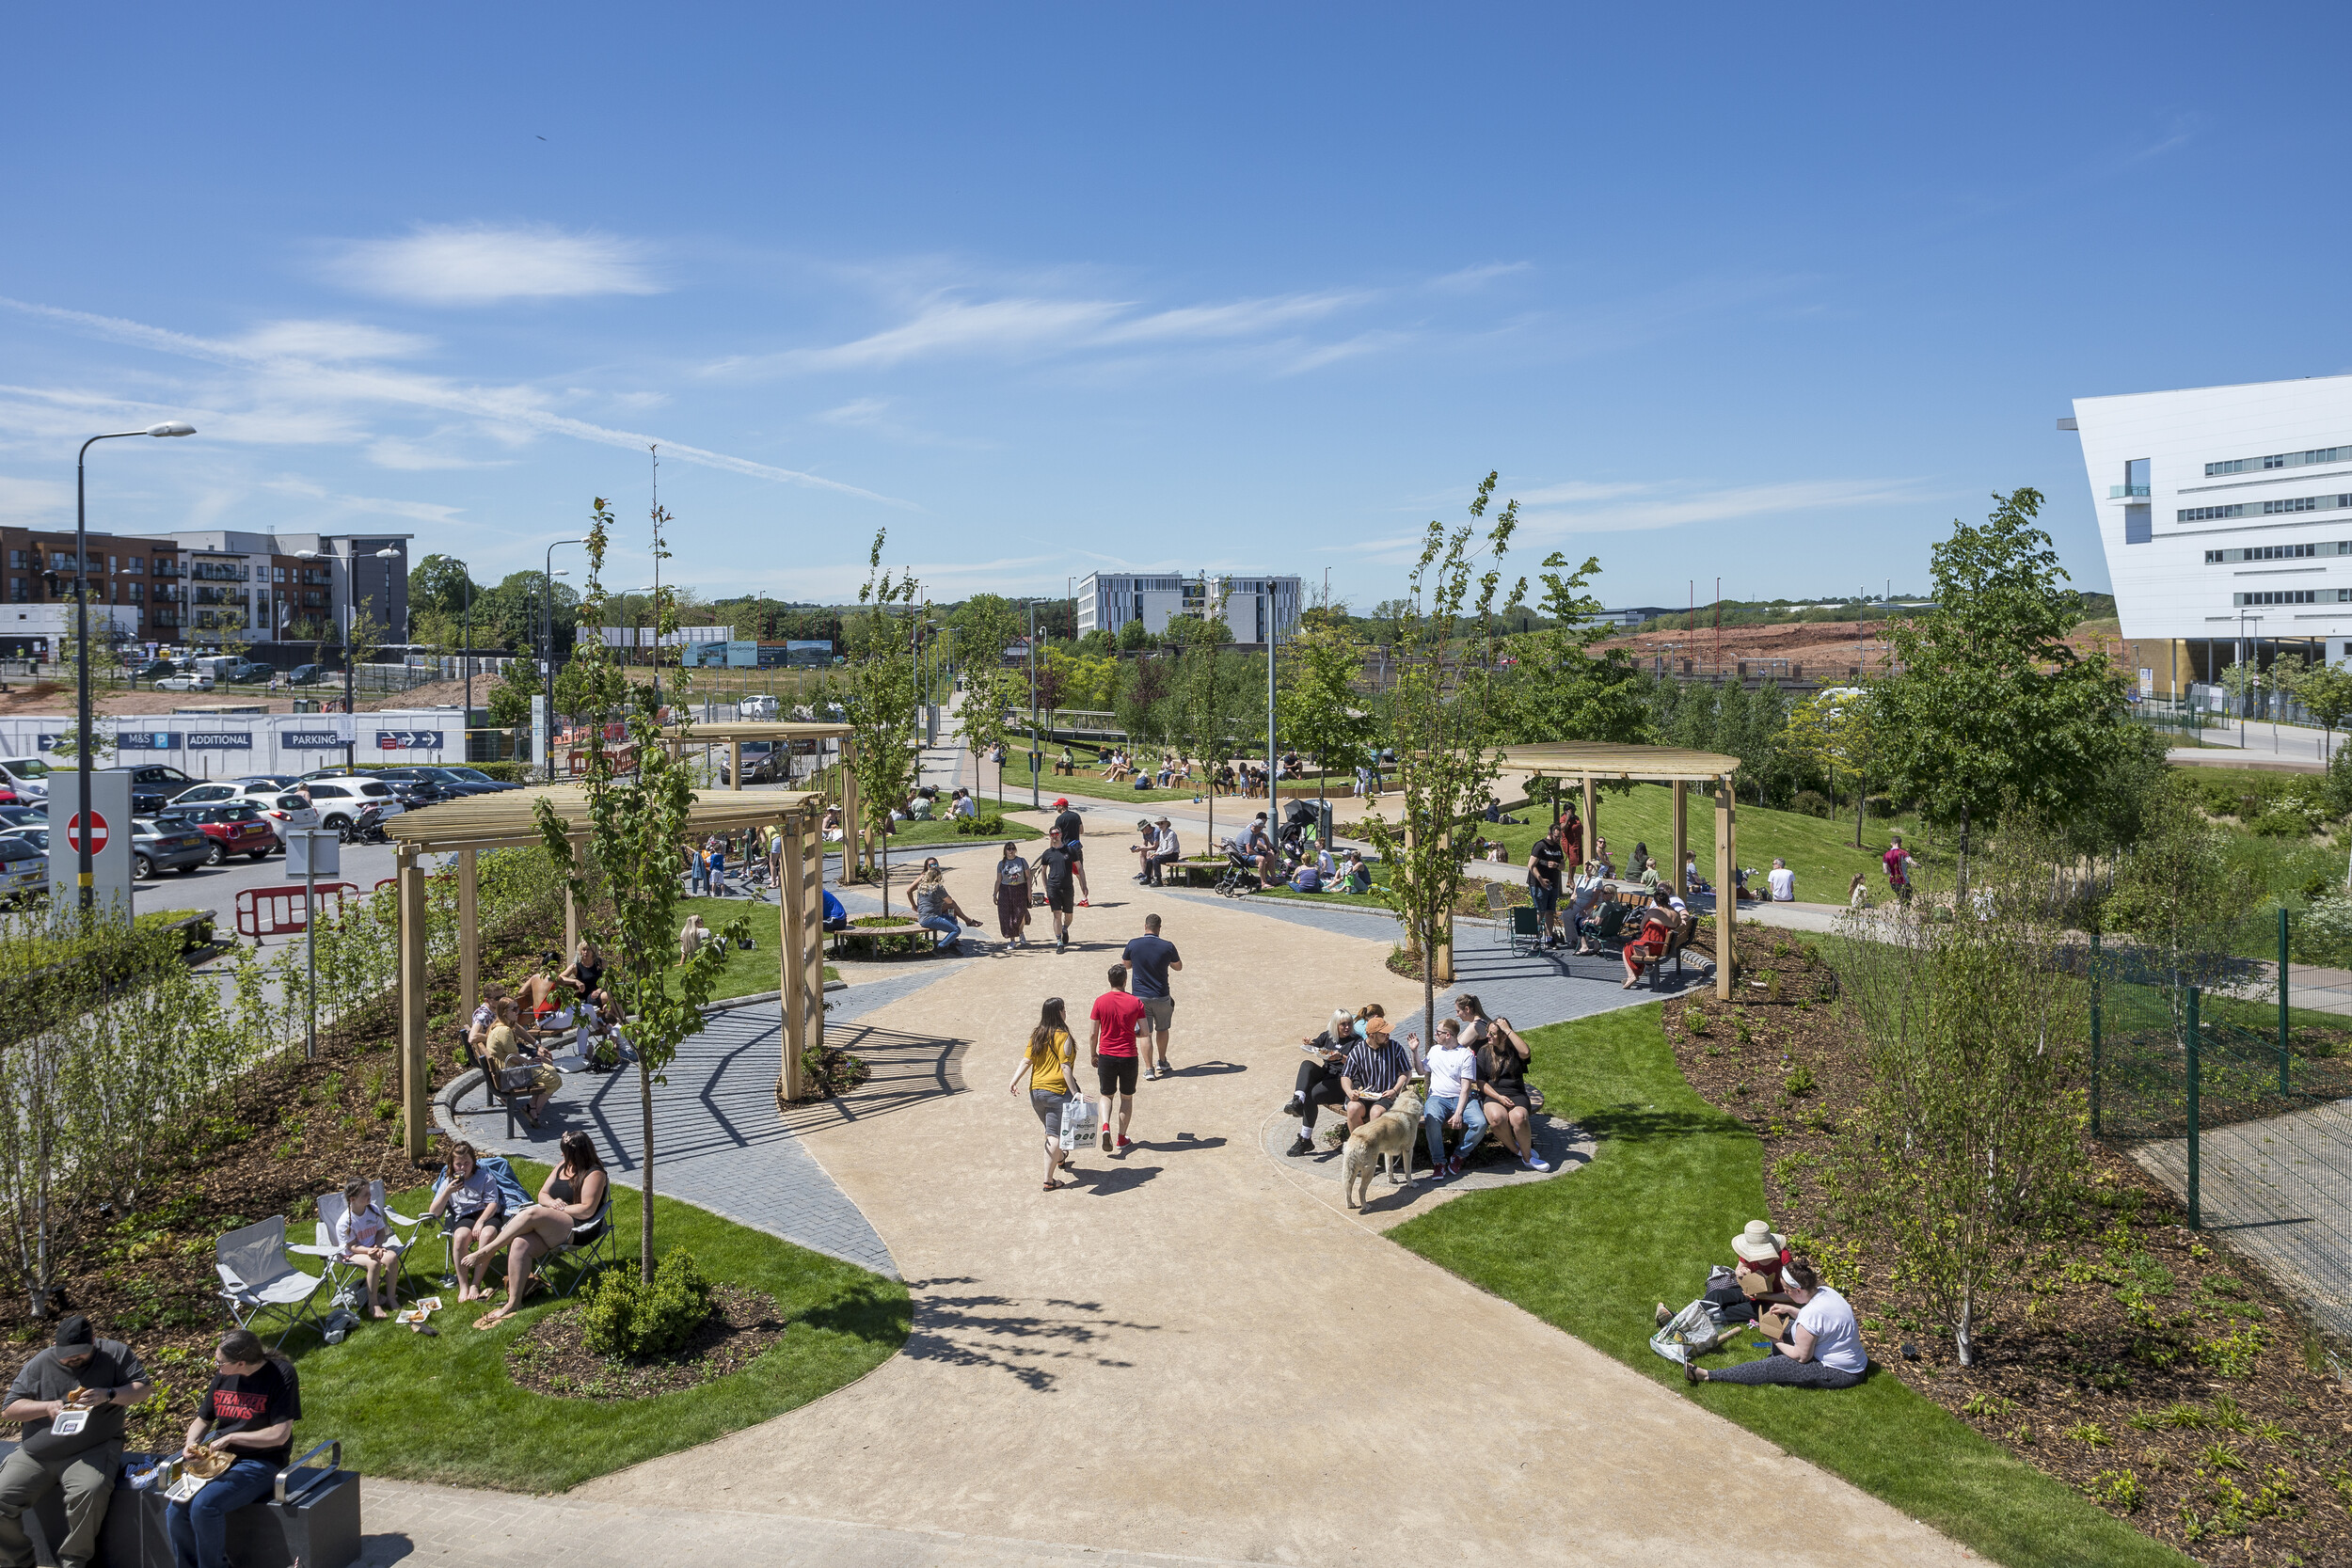 New green heart unveiled as part of ongoing regeneration of Longbridge